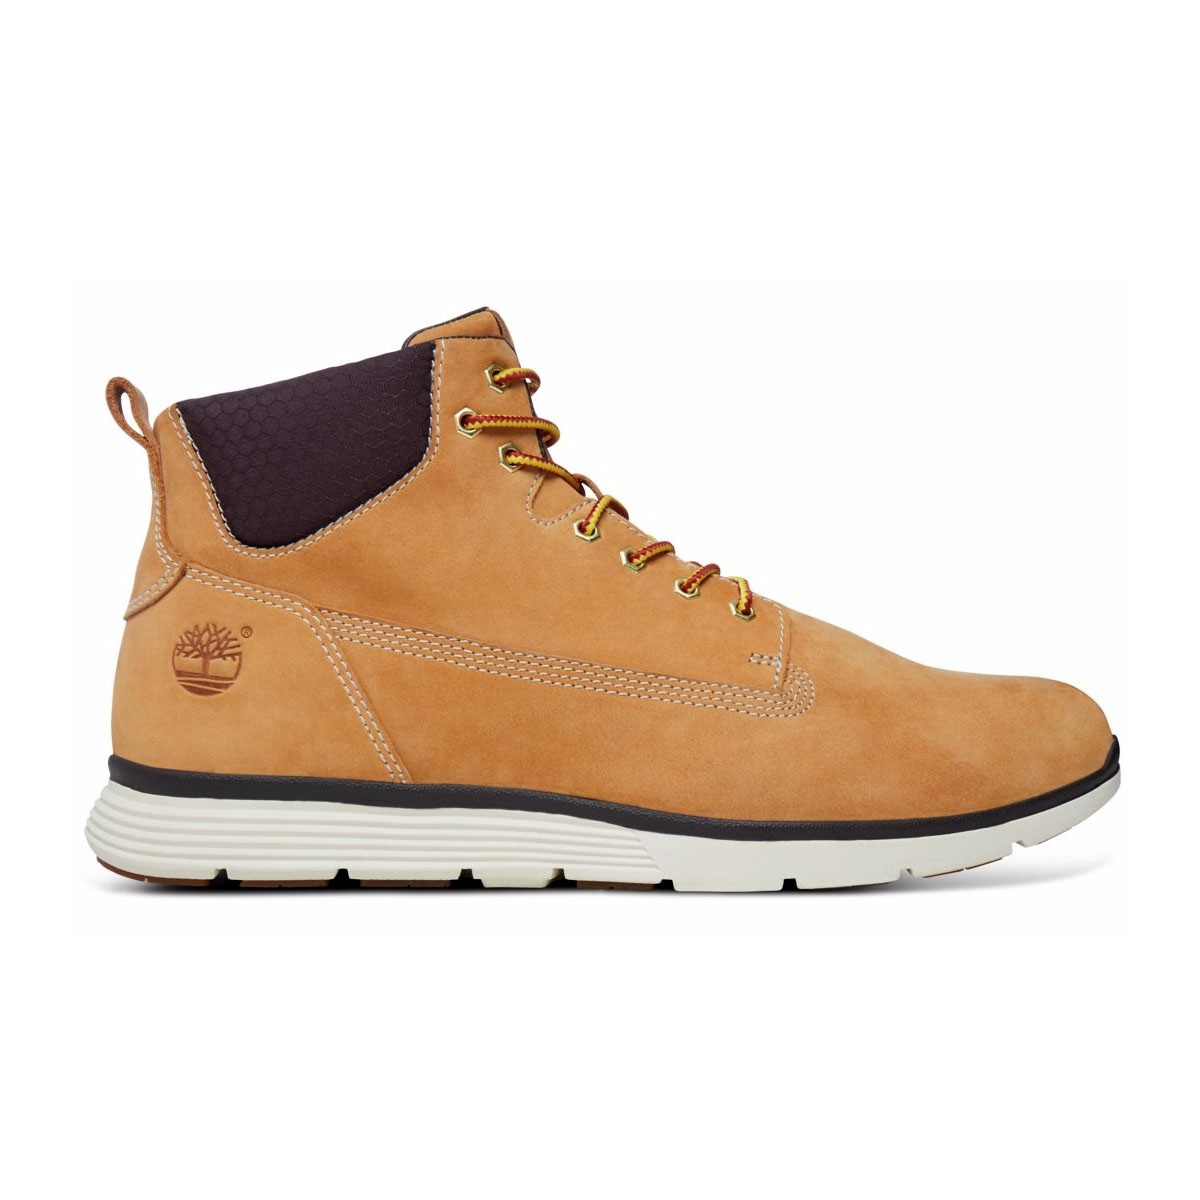 Timberland Killington Chukka A191I Wheat Nubuck